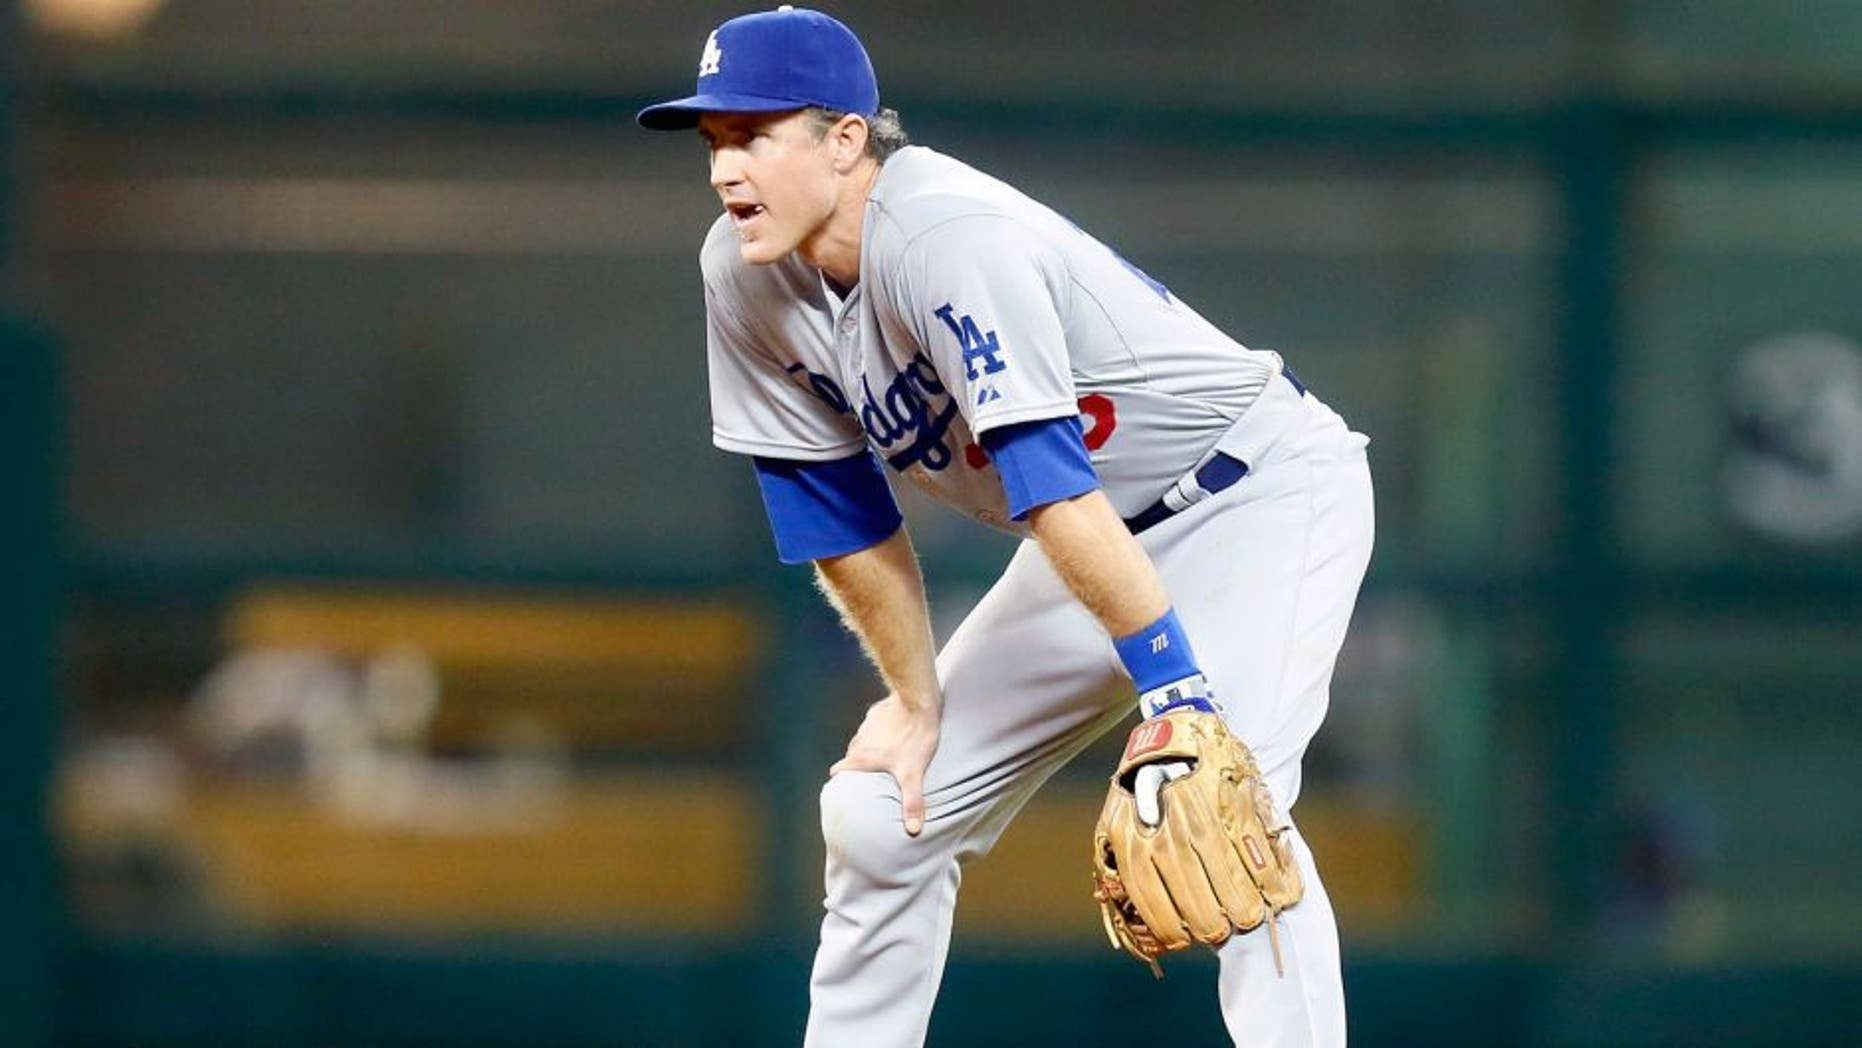 HOUSTON, TX - AUGUST 22: Chase Utley #26 of the Los Angeles Dodgers during game action against the Houston Astros at Minute Maid Park on August 22, 2015 in Houston, Texas. (Photo by Bob Levey/Getty Images)